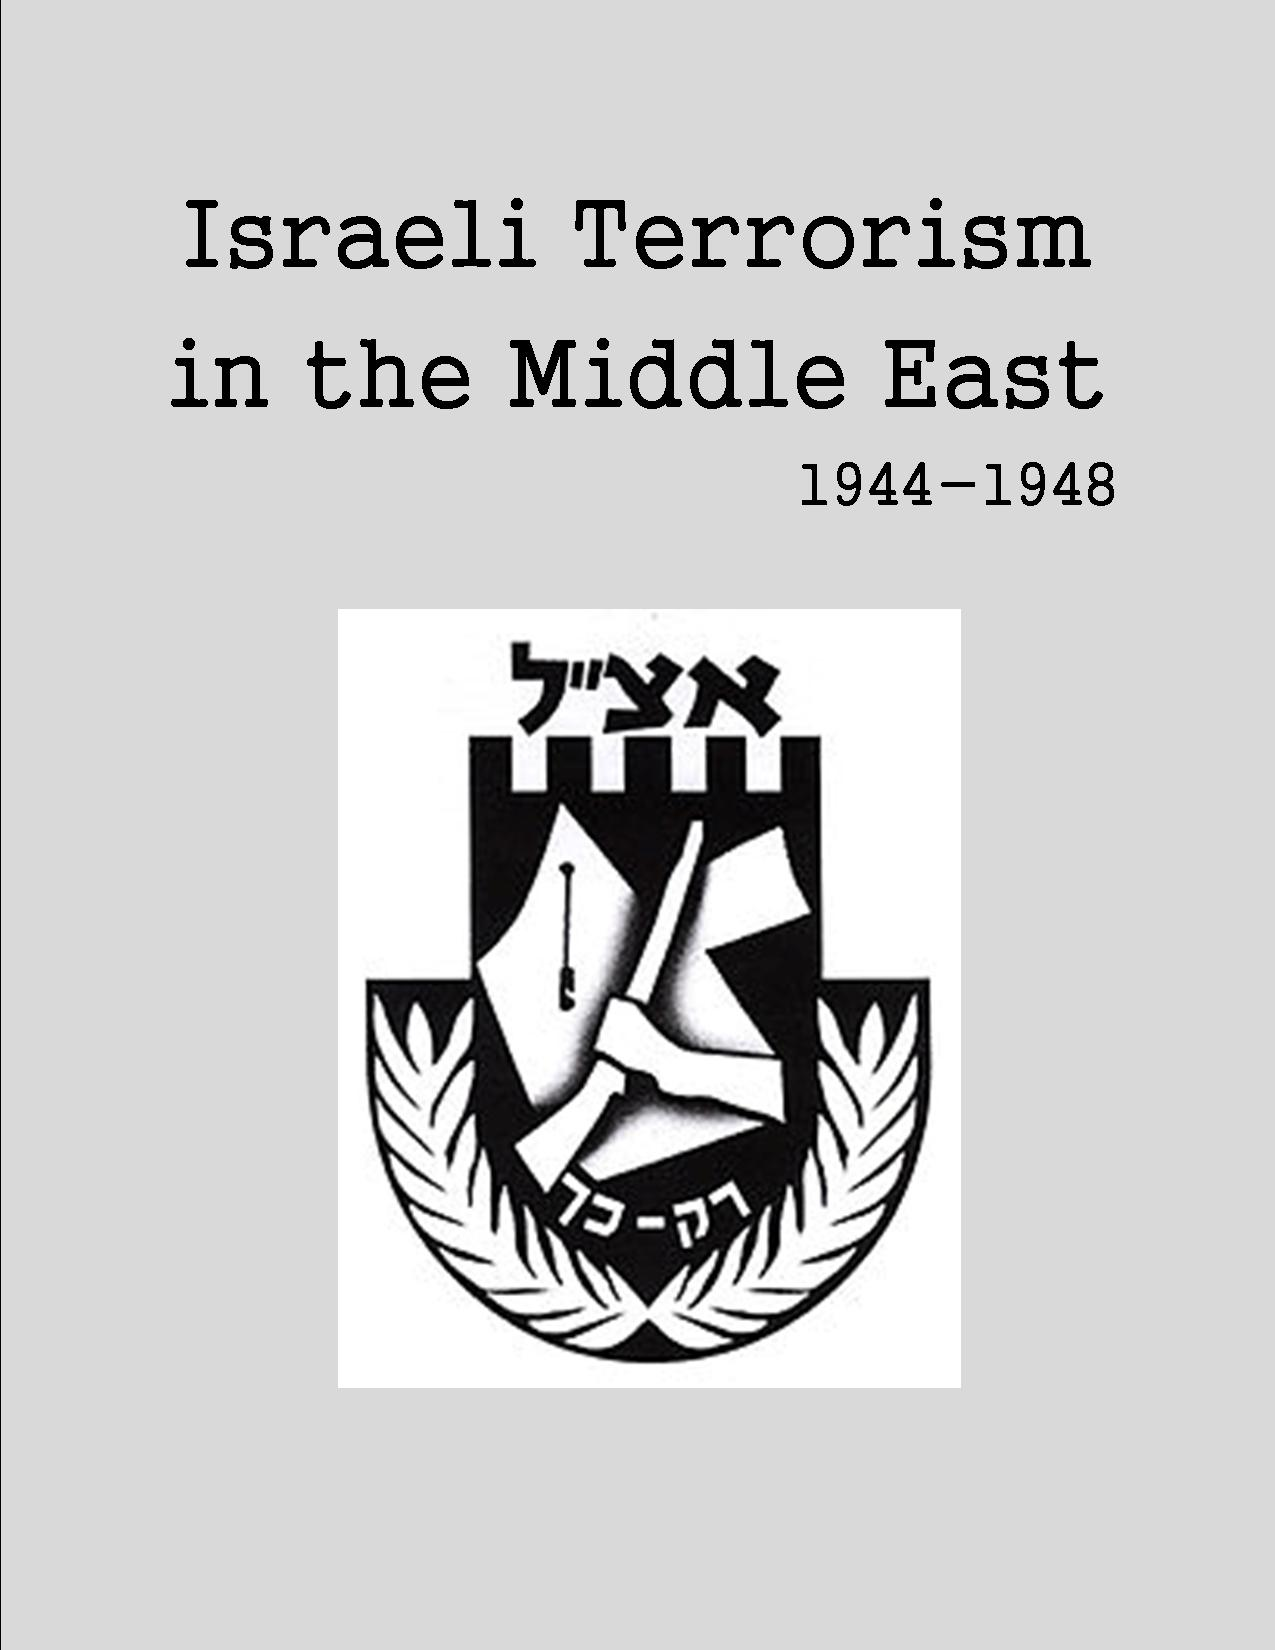 Israeli Terrorism in the Middle East